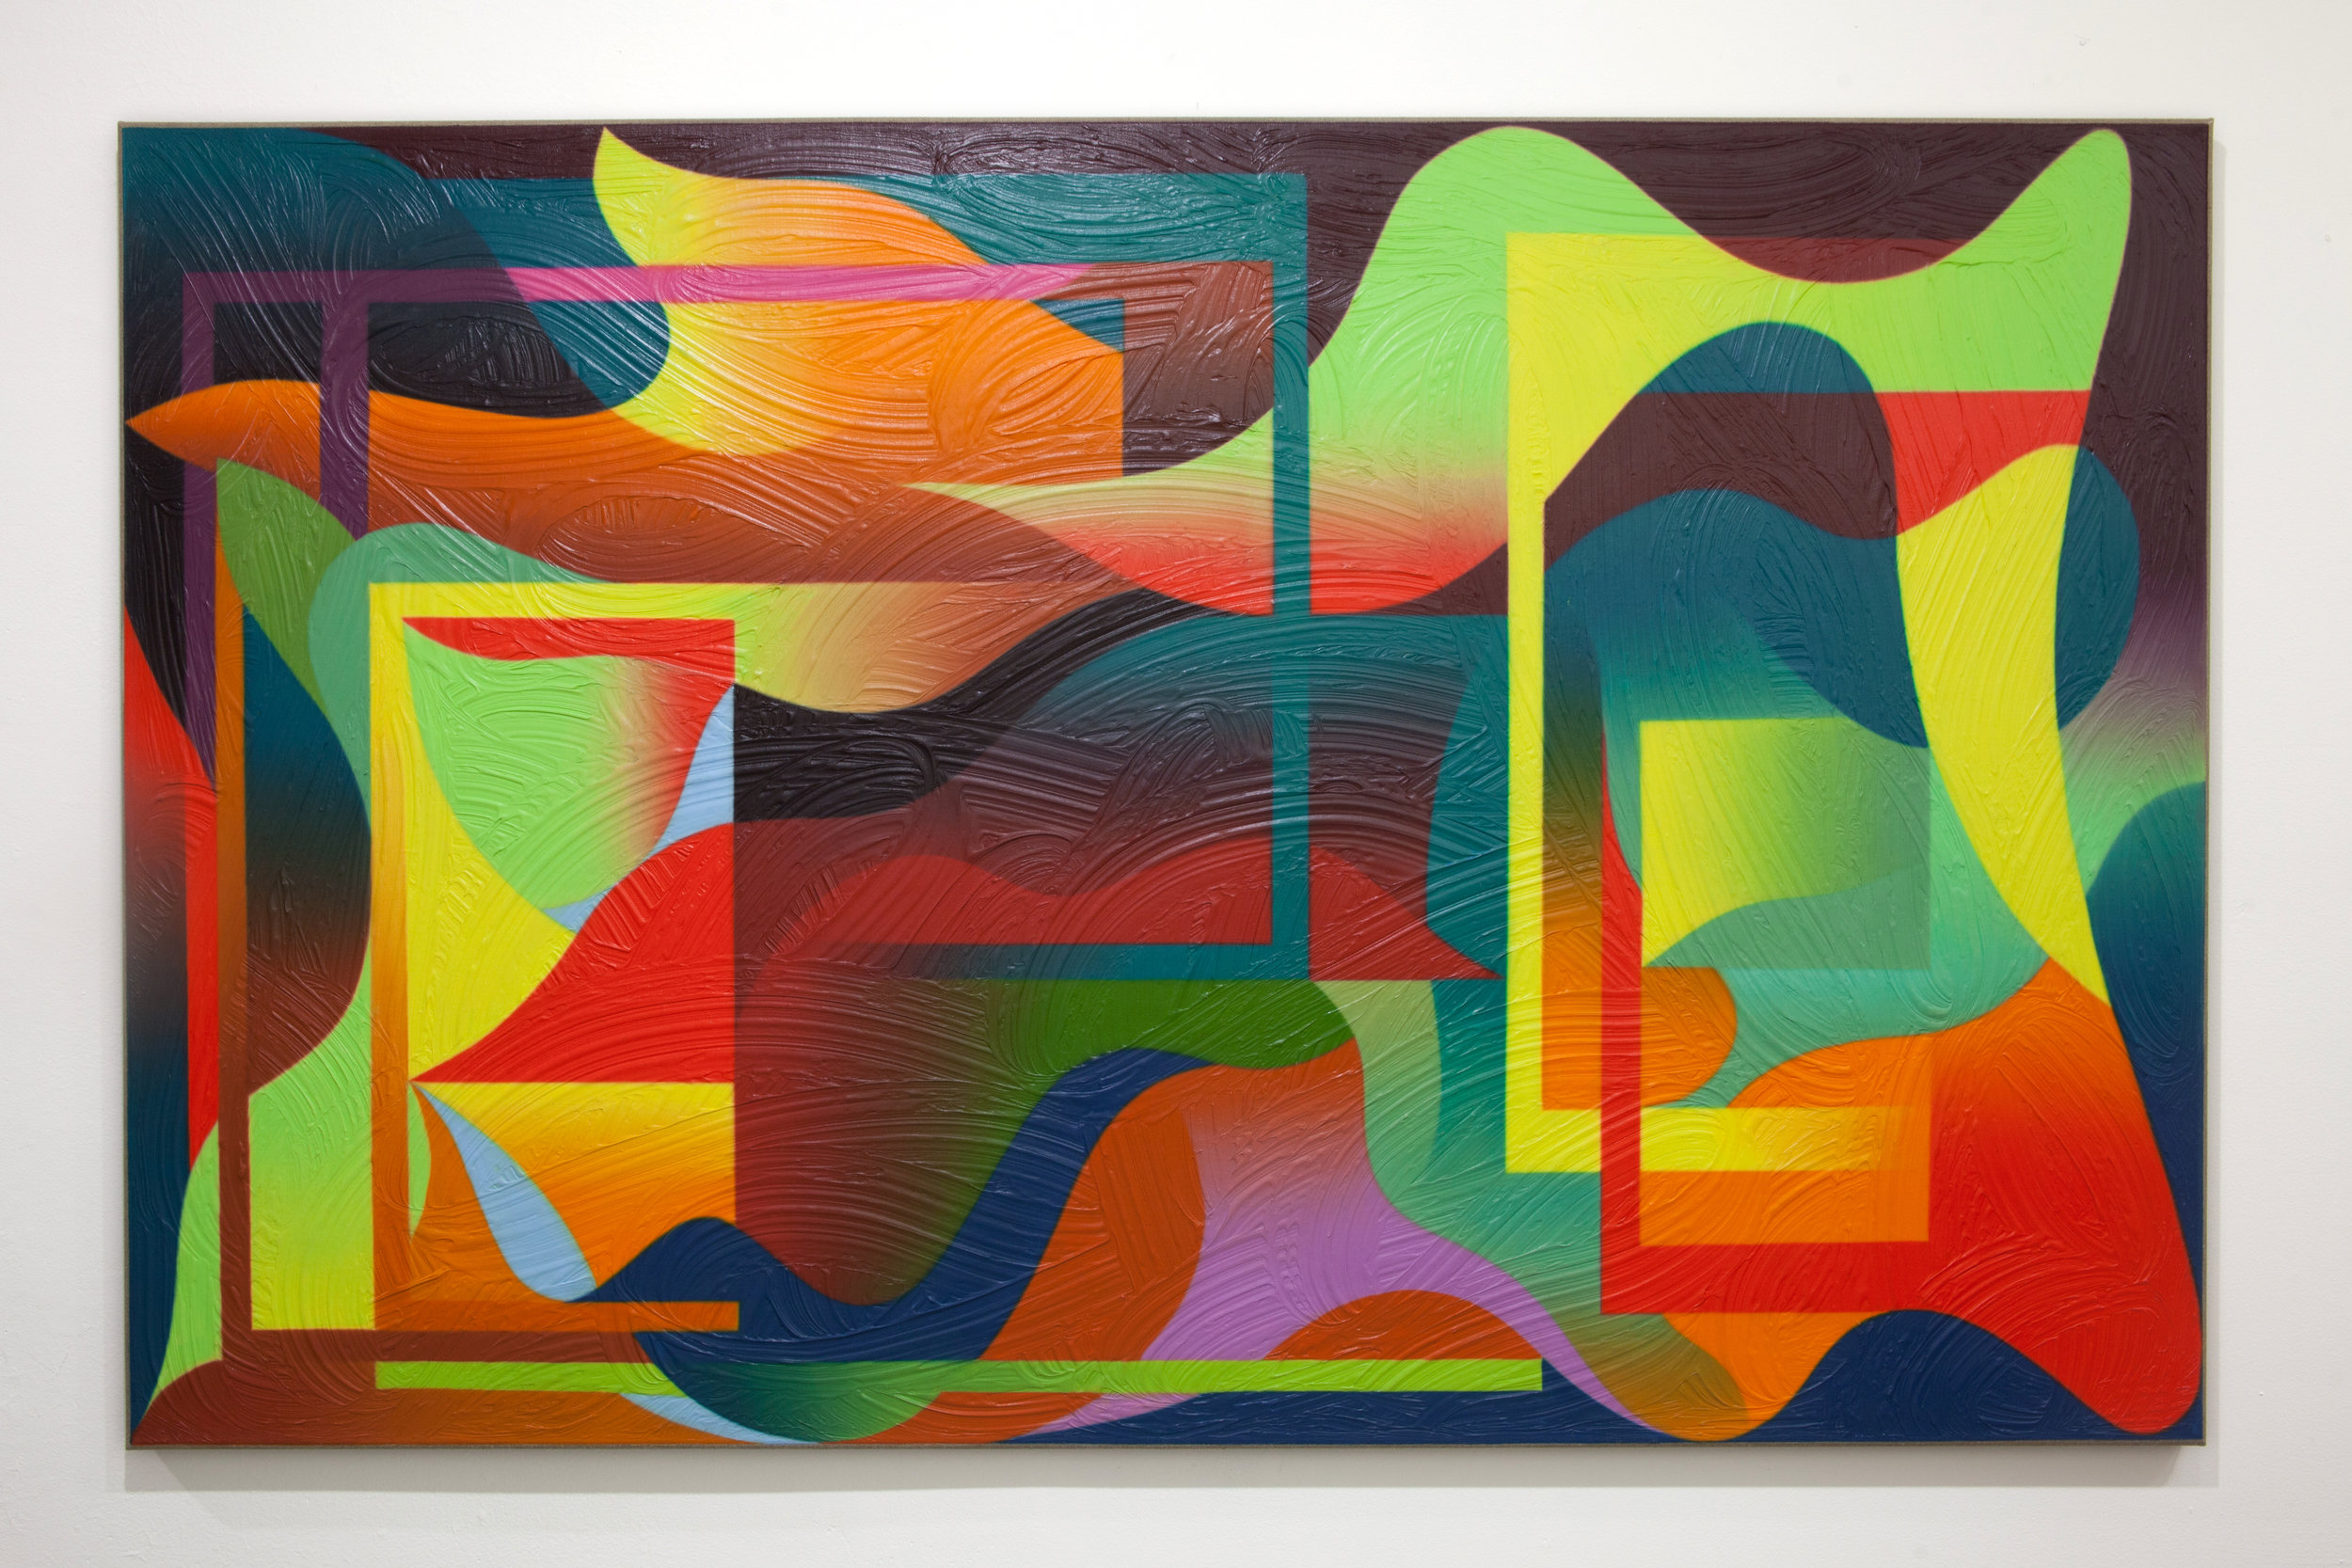 Untitled, 2018 Oil on linen 44 x 65 inches